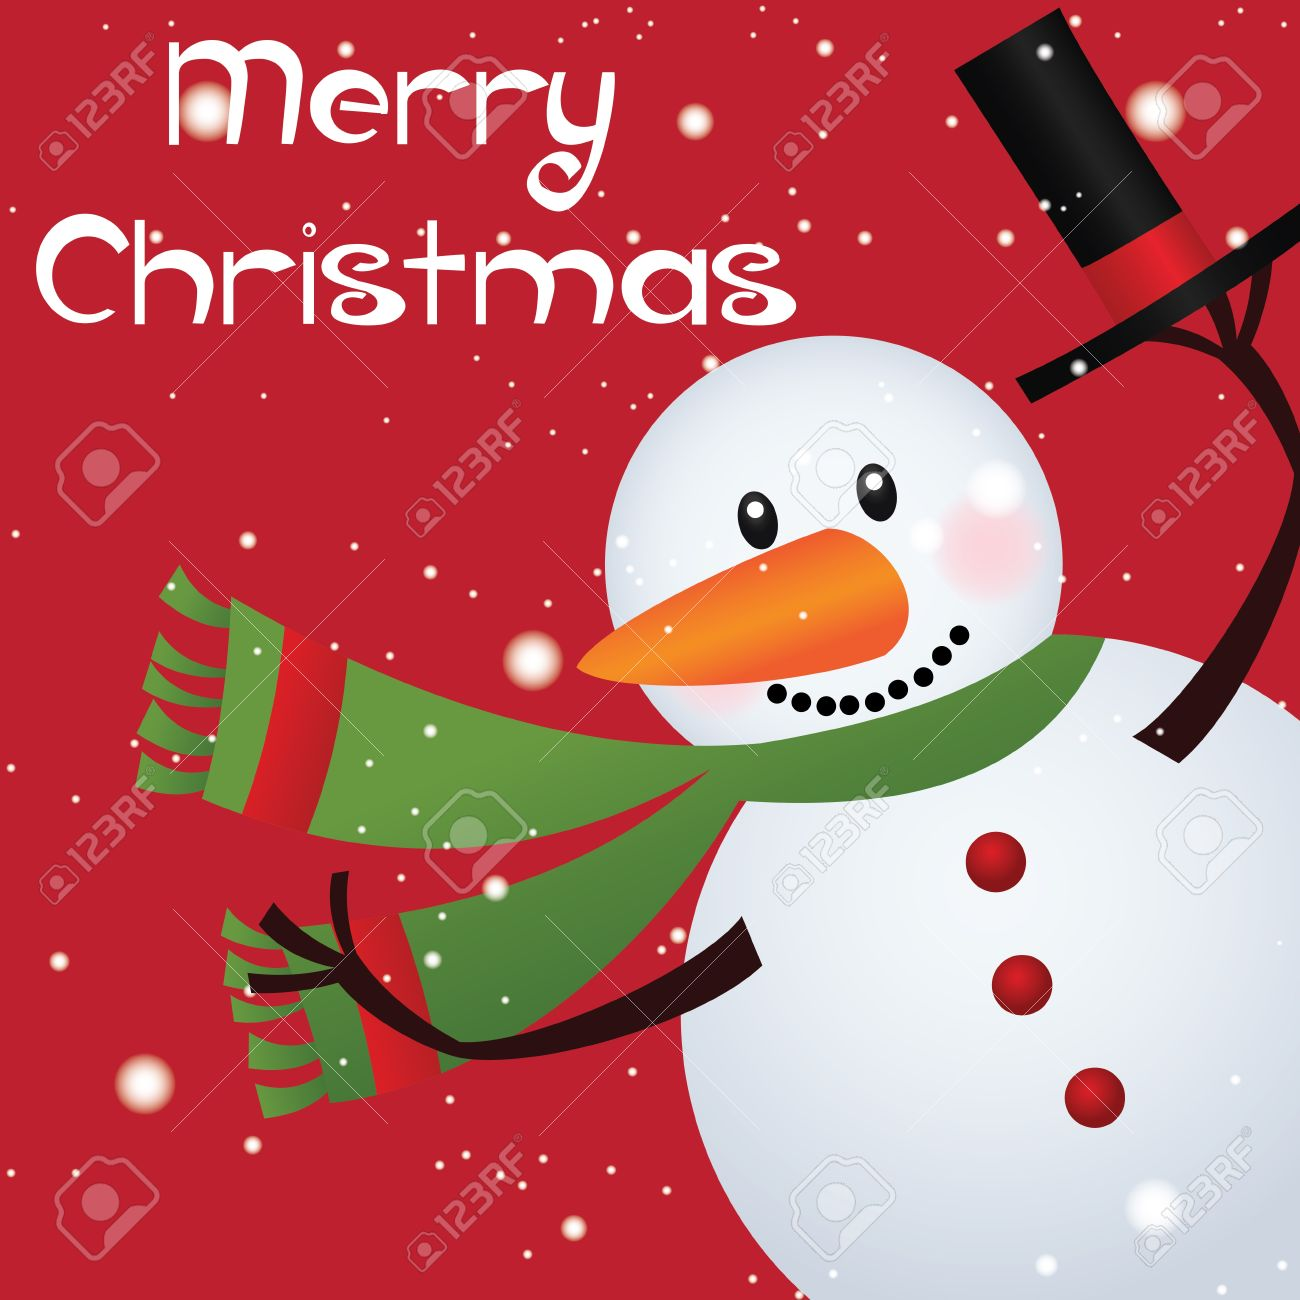 Merry christmas text and cute snowman on red background Stock Vector - 21910749